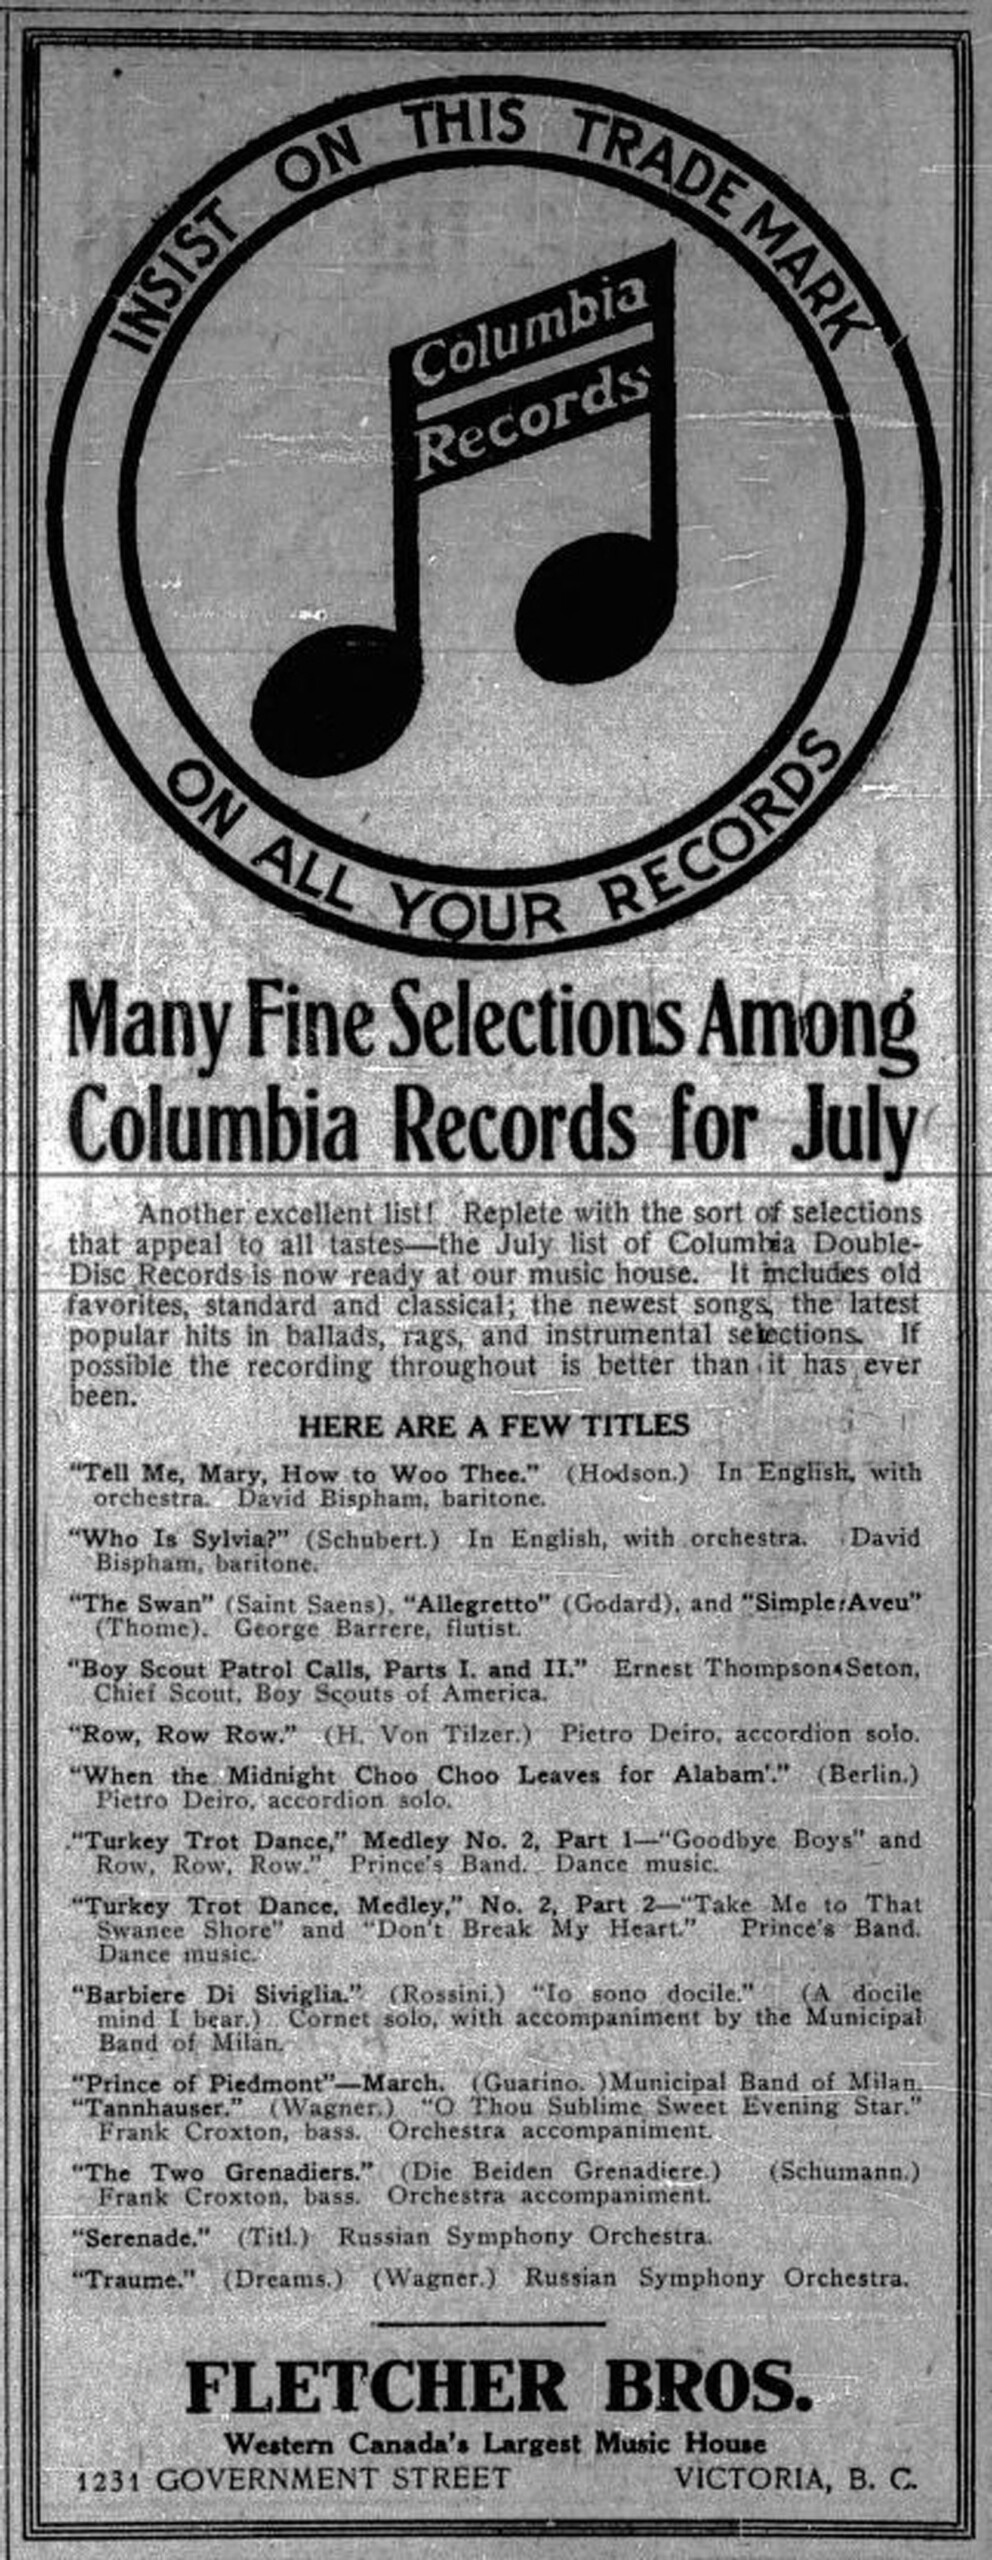 June 1913 advertisement for Columbia Records by Fletcher Brothers, 1231 Government Street.